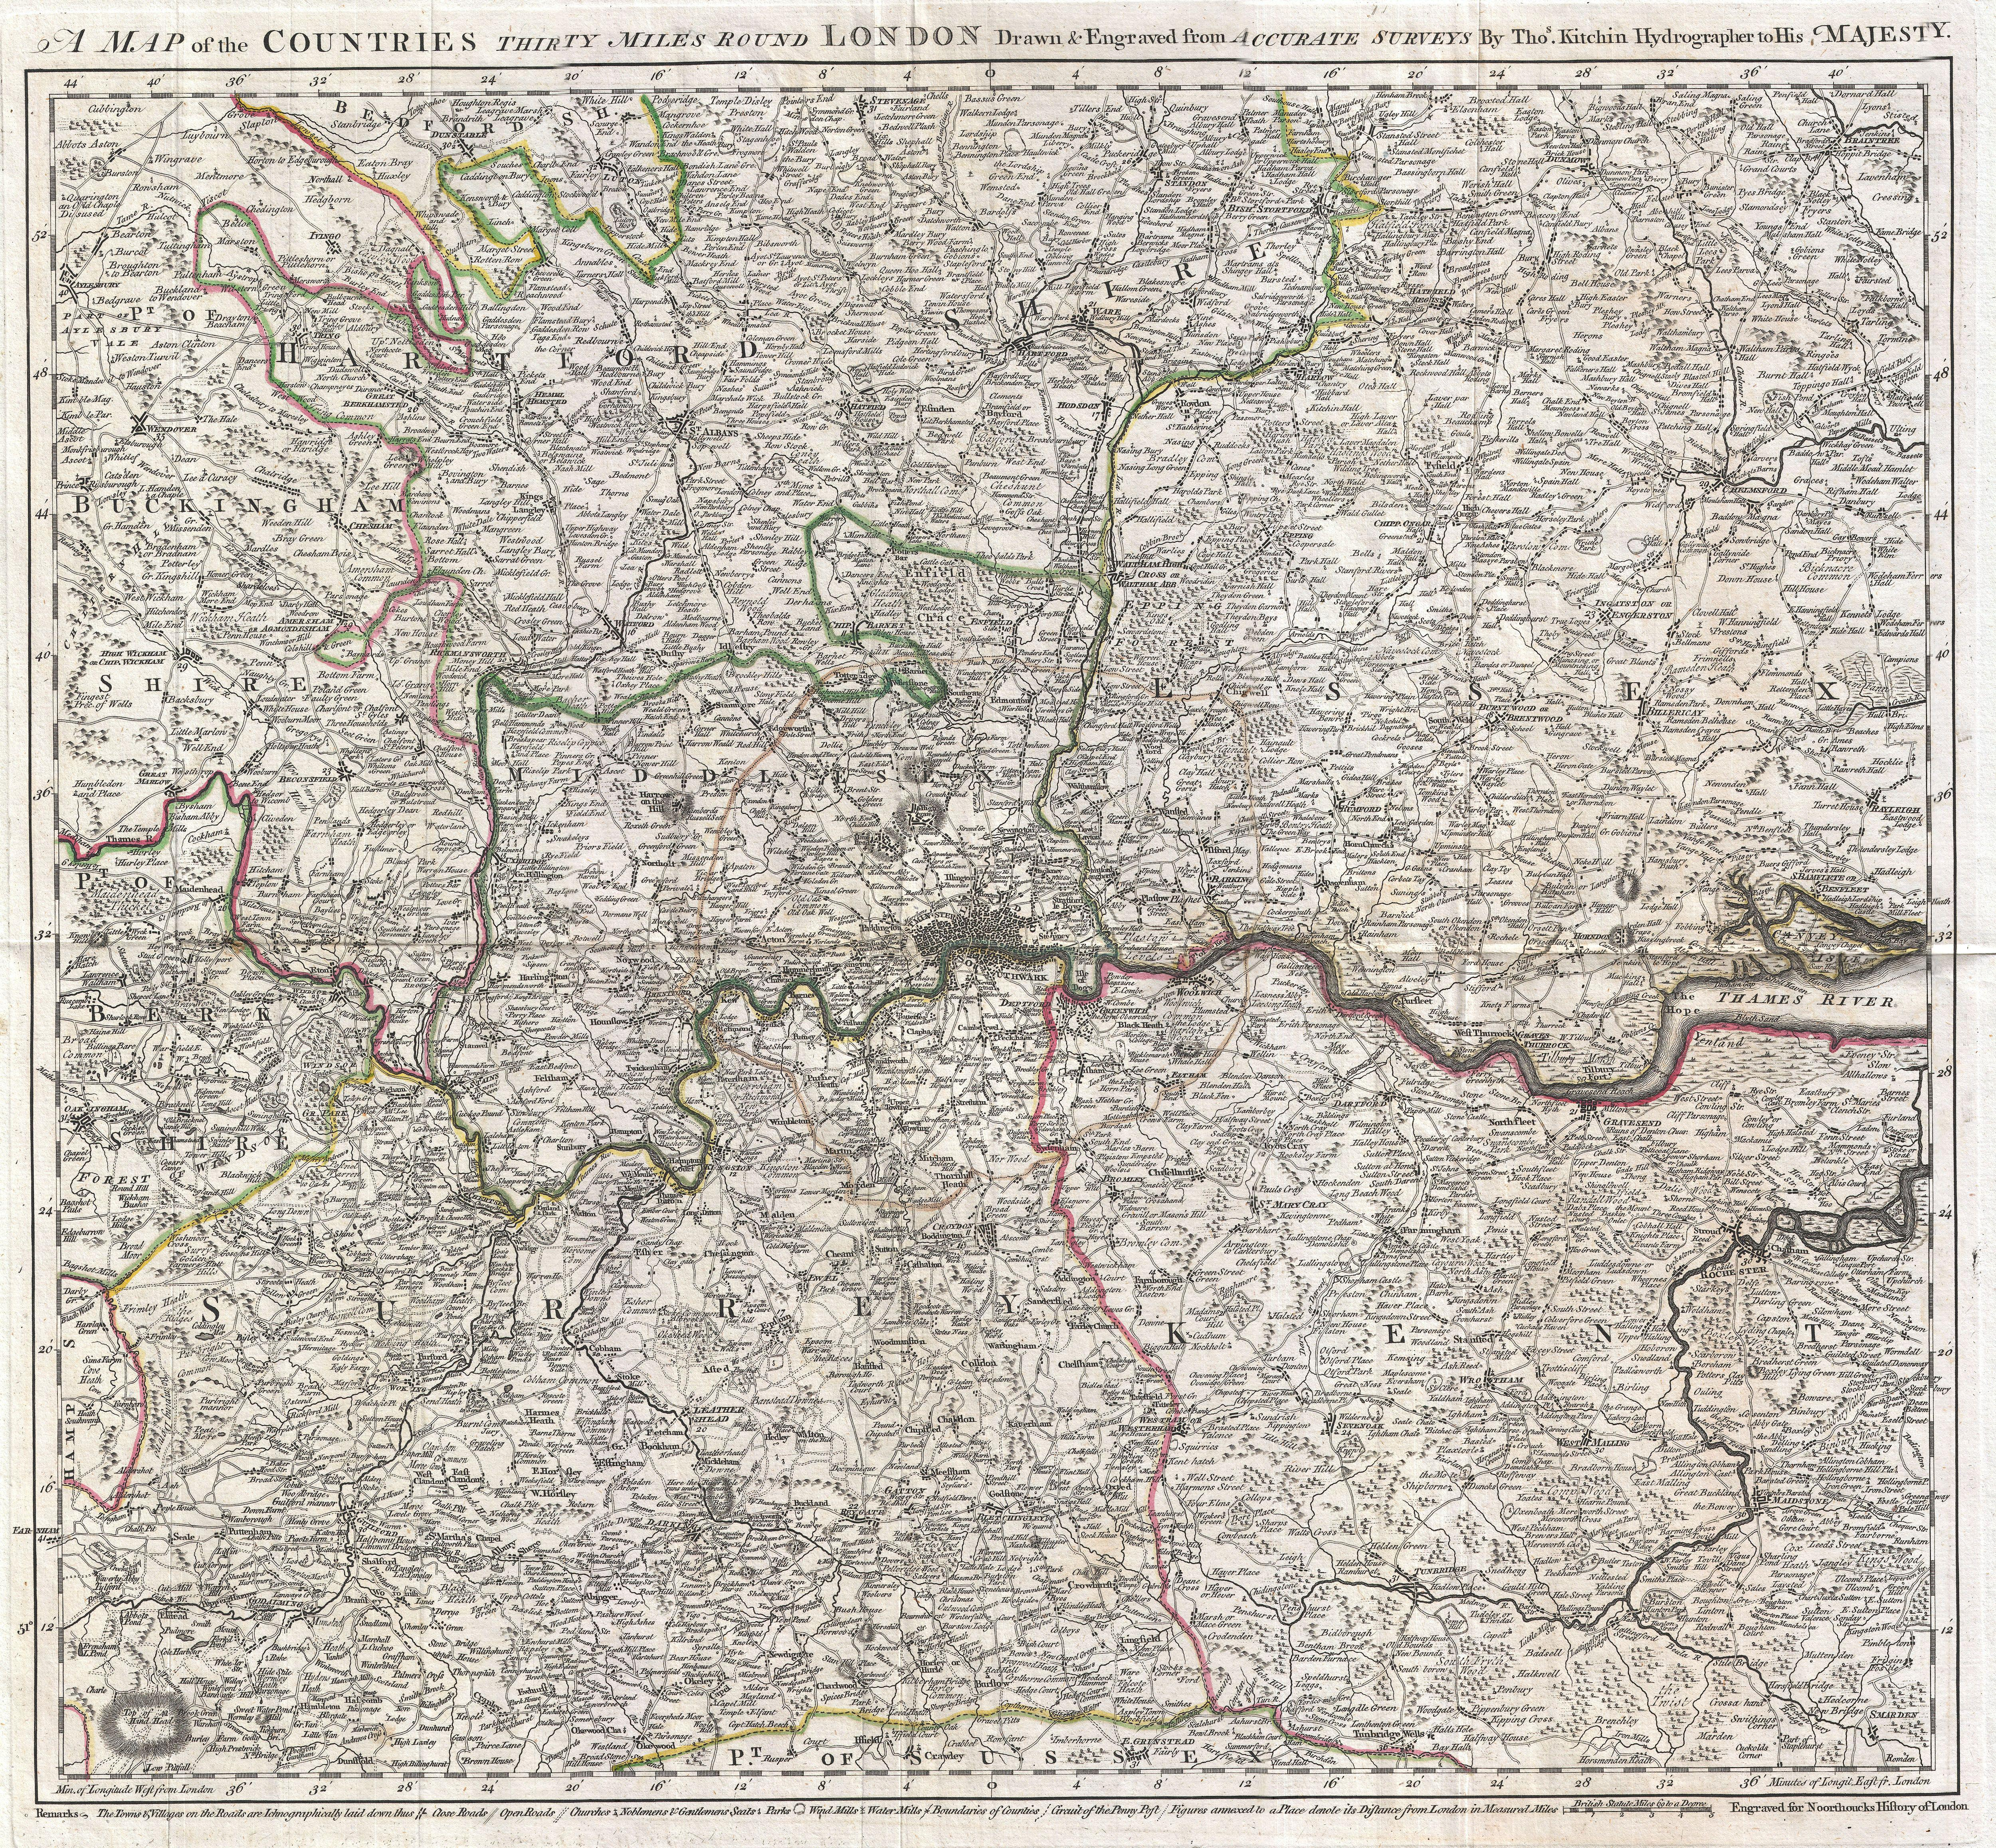 File Kitchin Map Of The Country Miles Around London - 02 london map